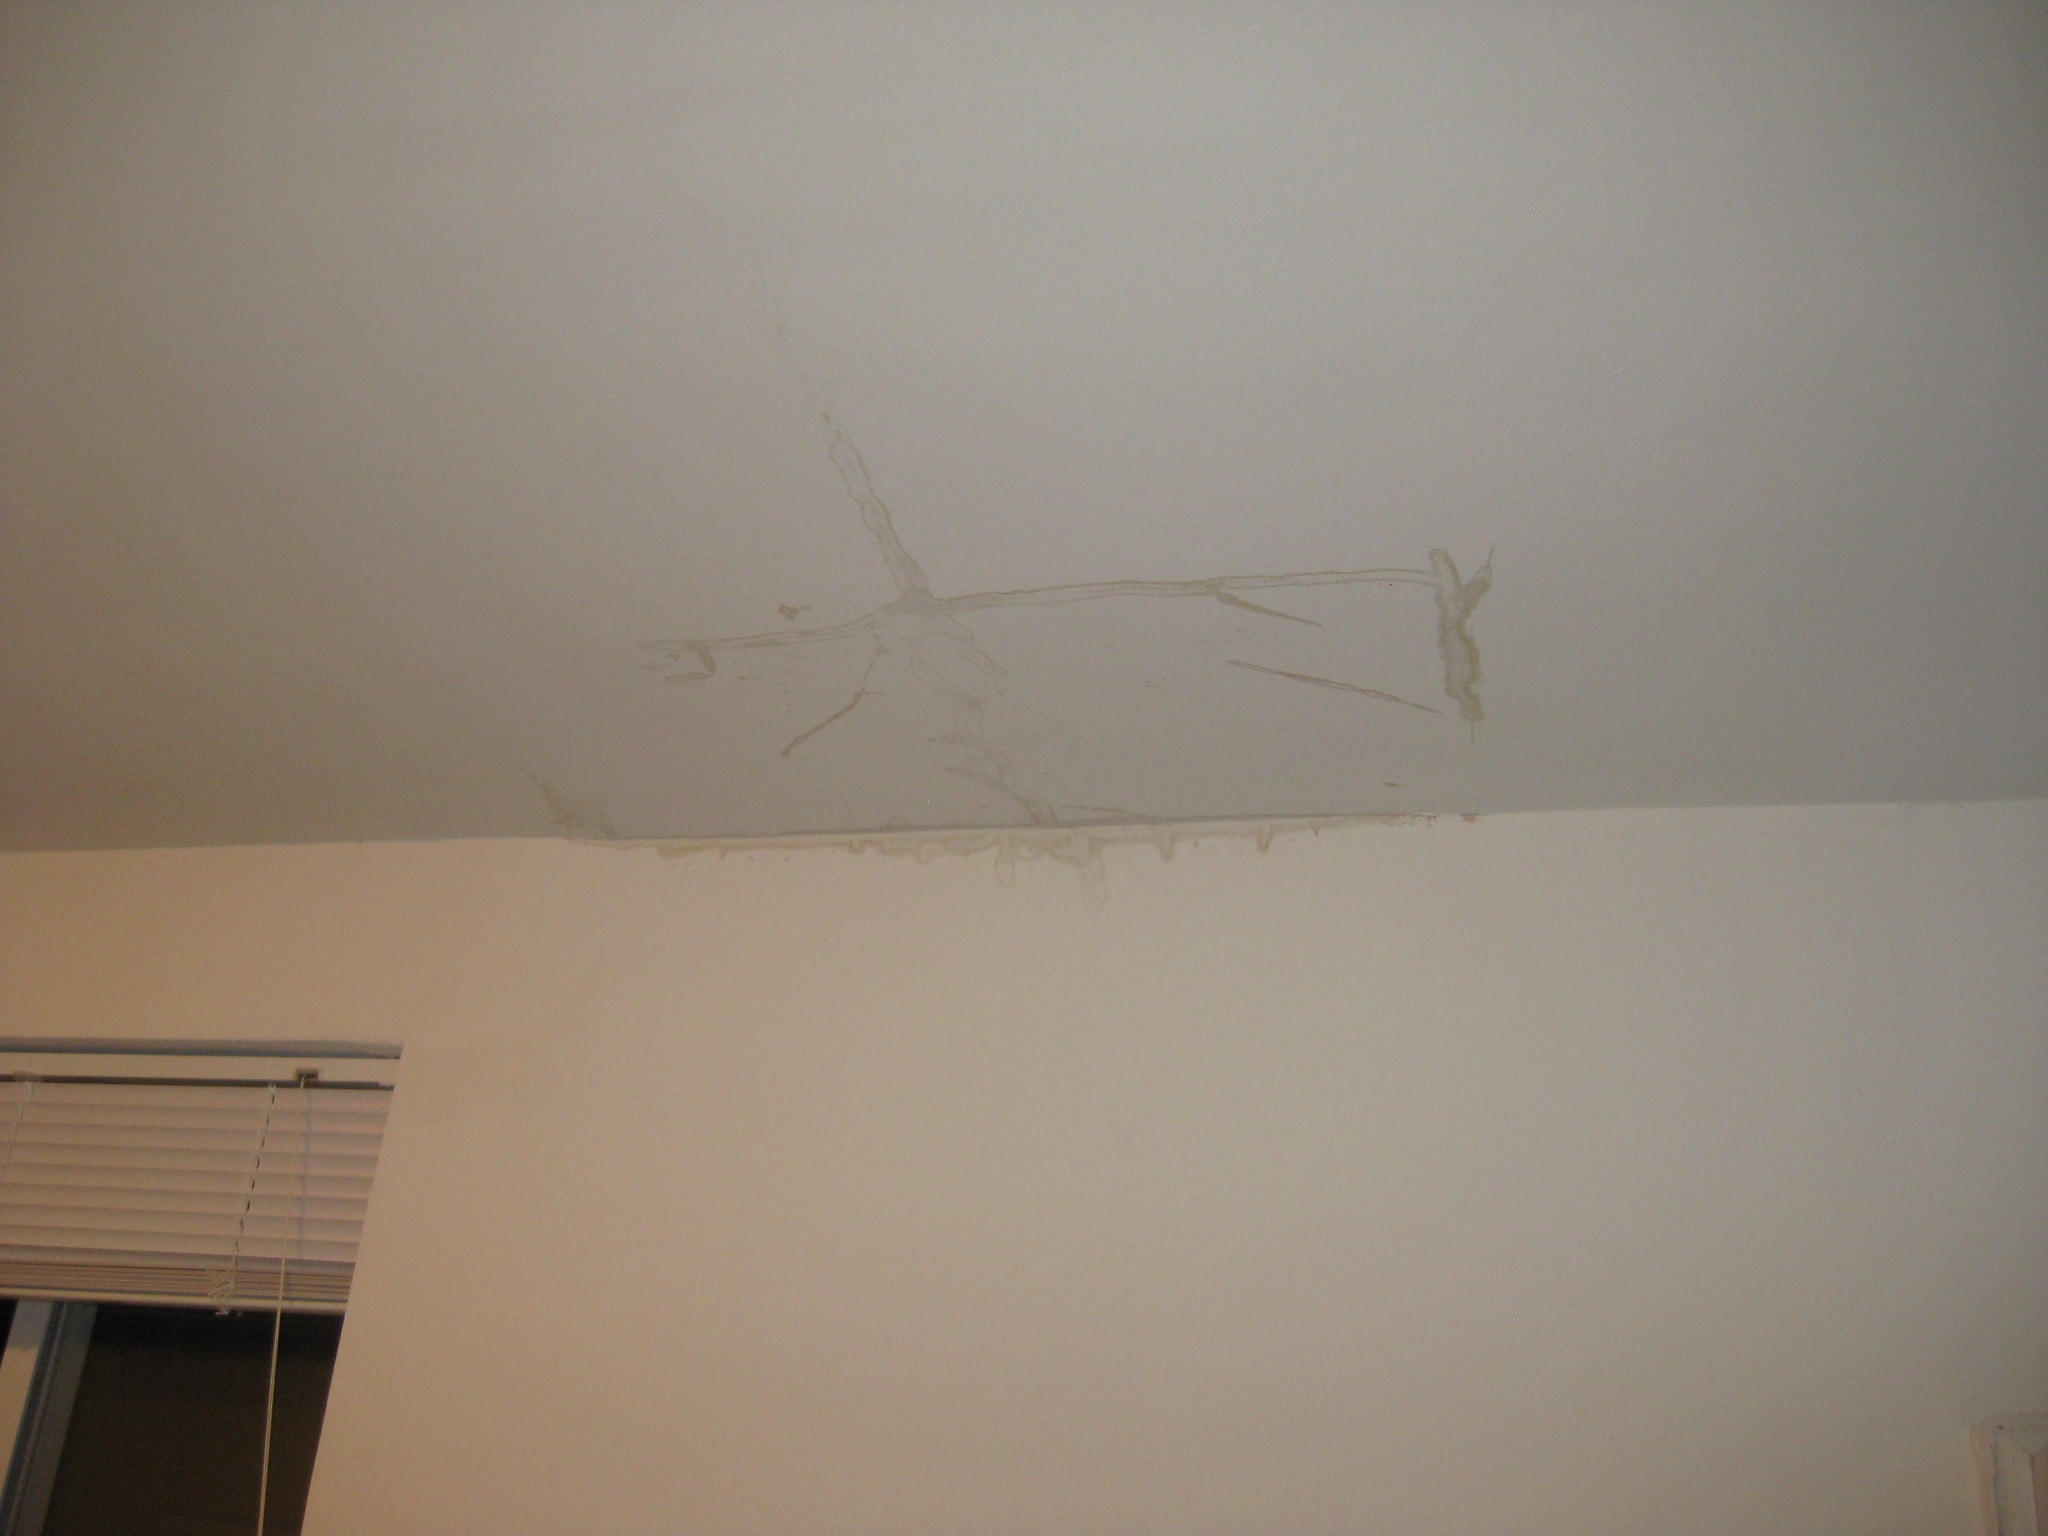 The ceiling in my apartment is leaking Leak in ceiling when it rains